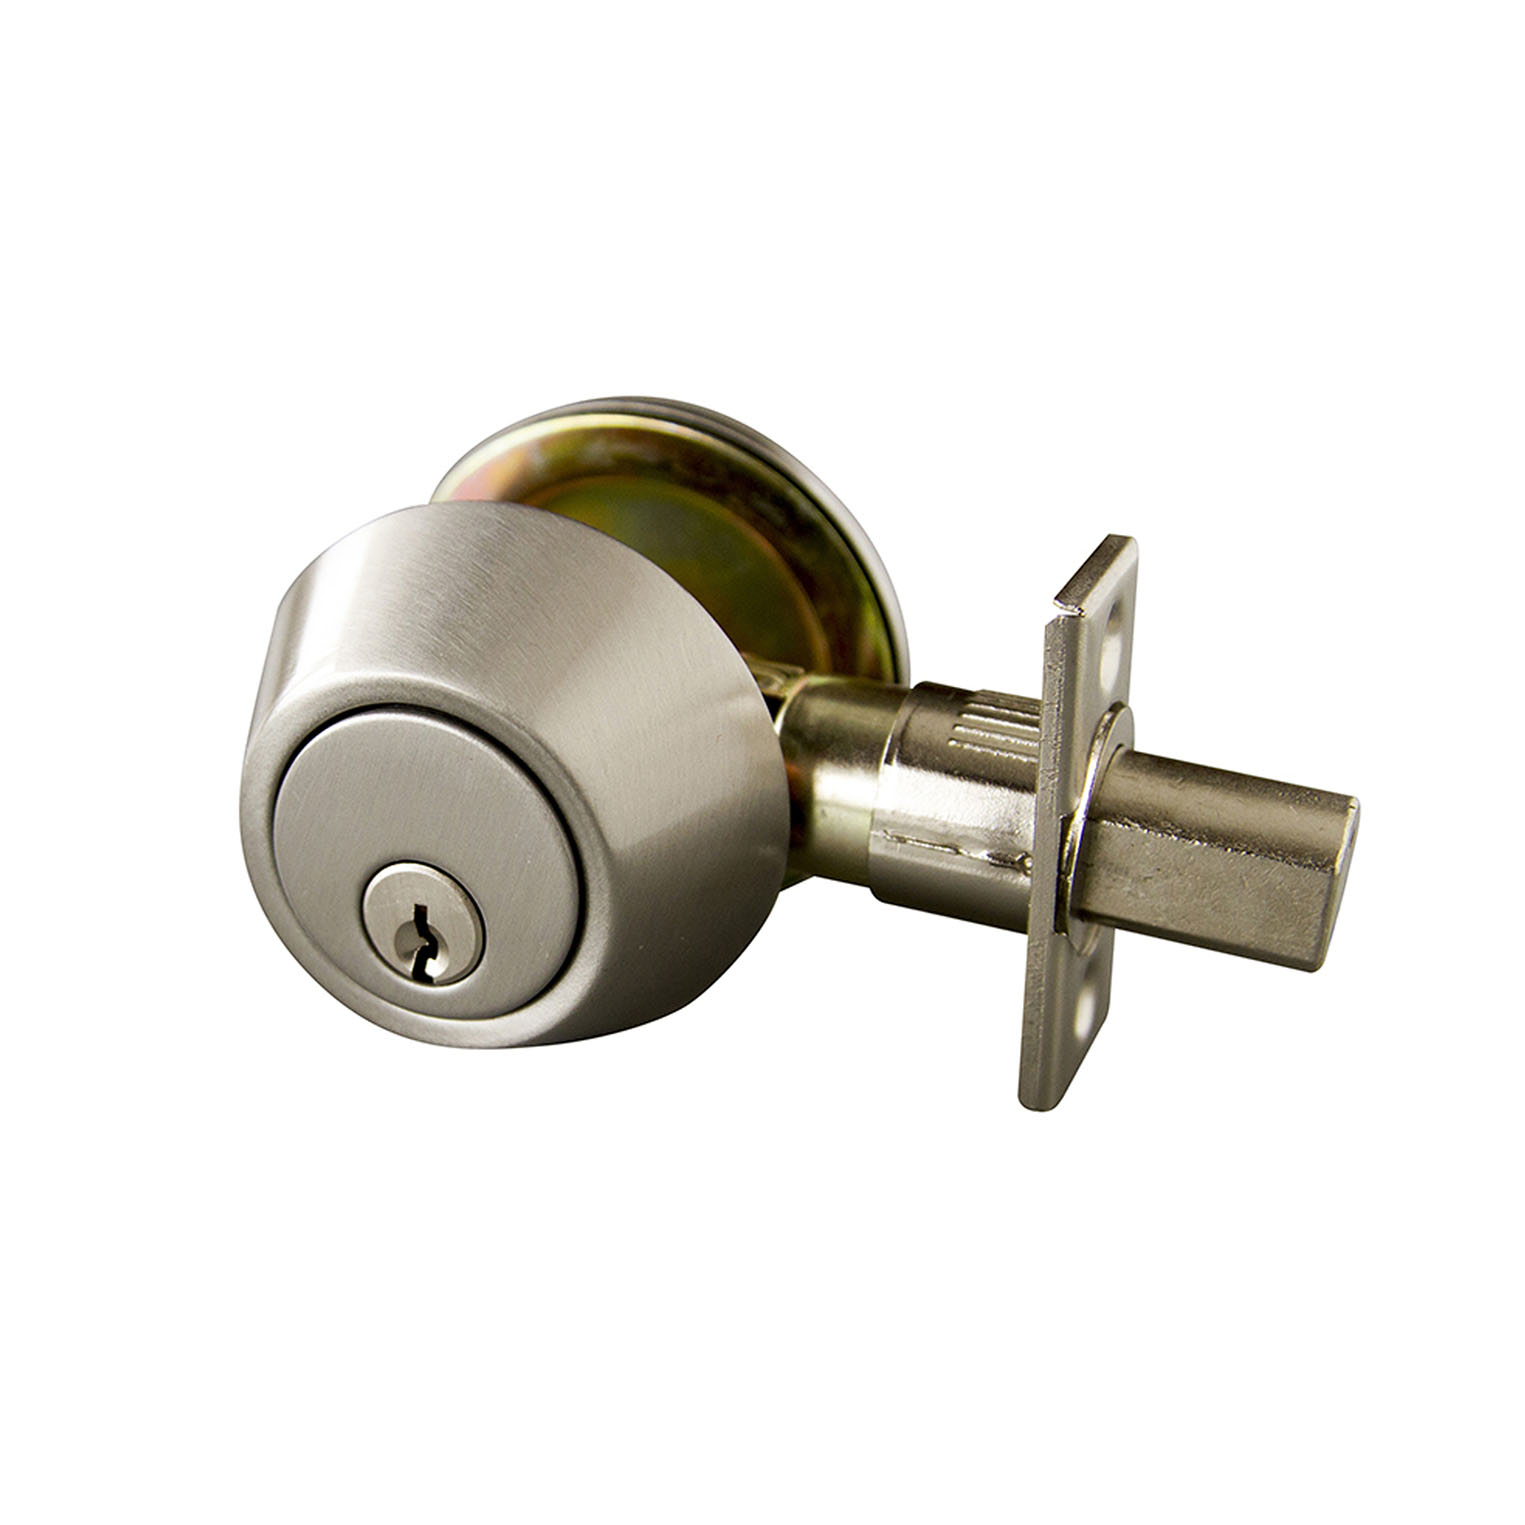 Design House 727446 Single Cylinder Deadbolt Satin Nickel